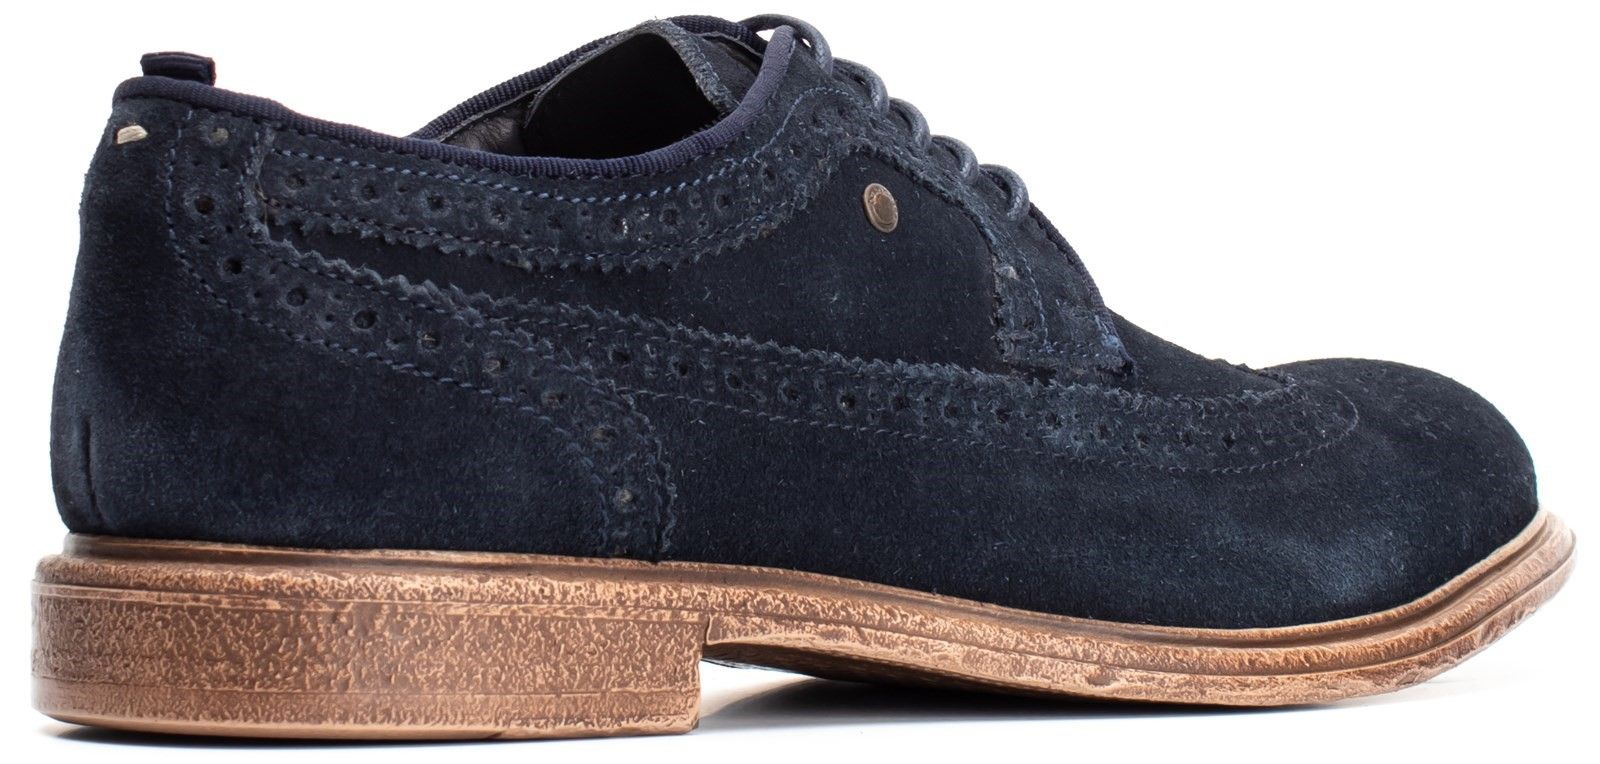 Onyx Suede Lace Up Brogue